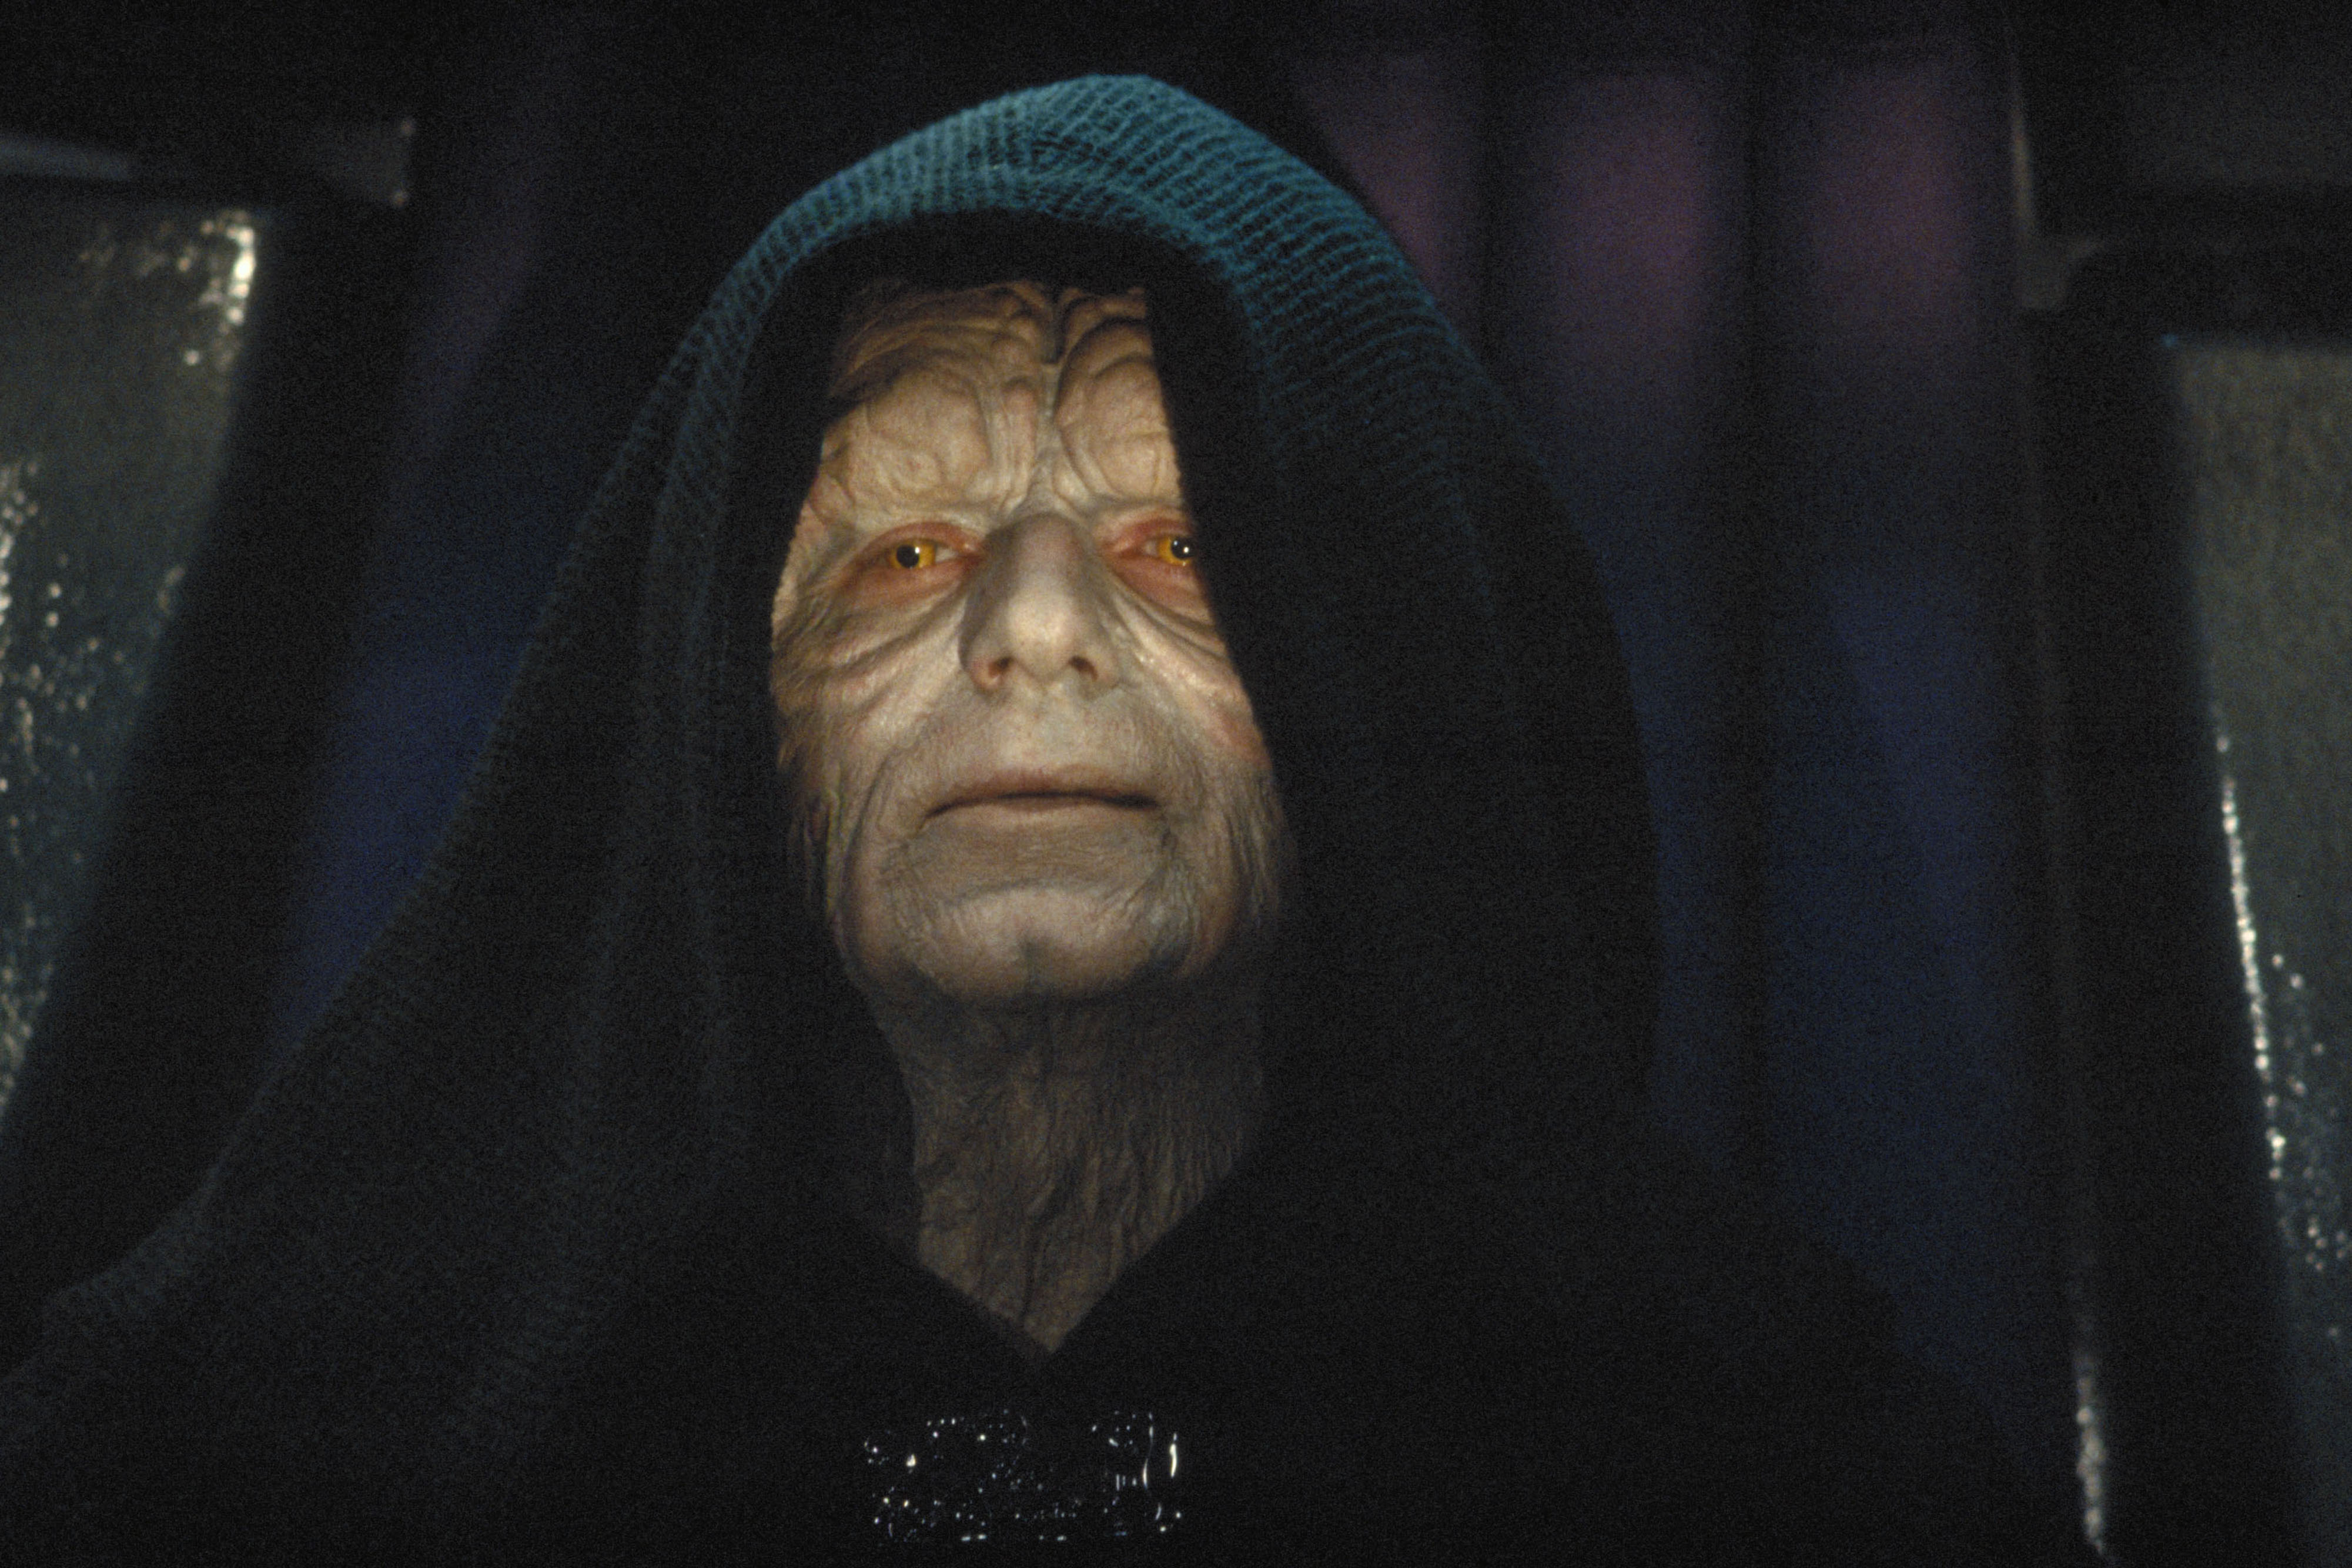 George Lucas Palpatine Was Dead Forever After Return Of The Jedi Indiewire